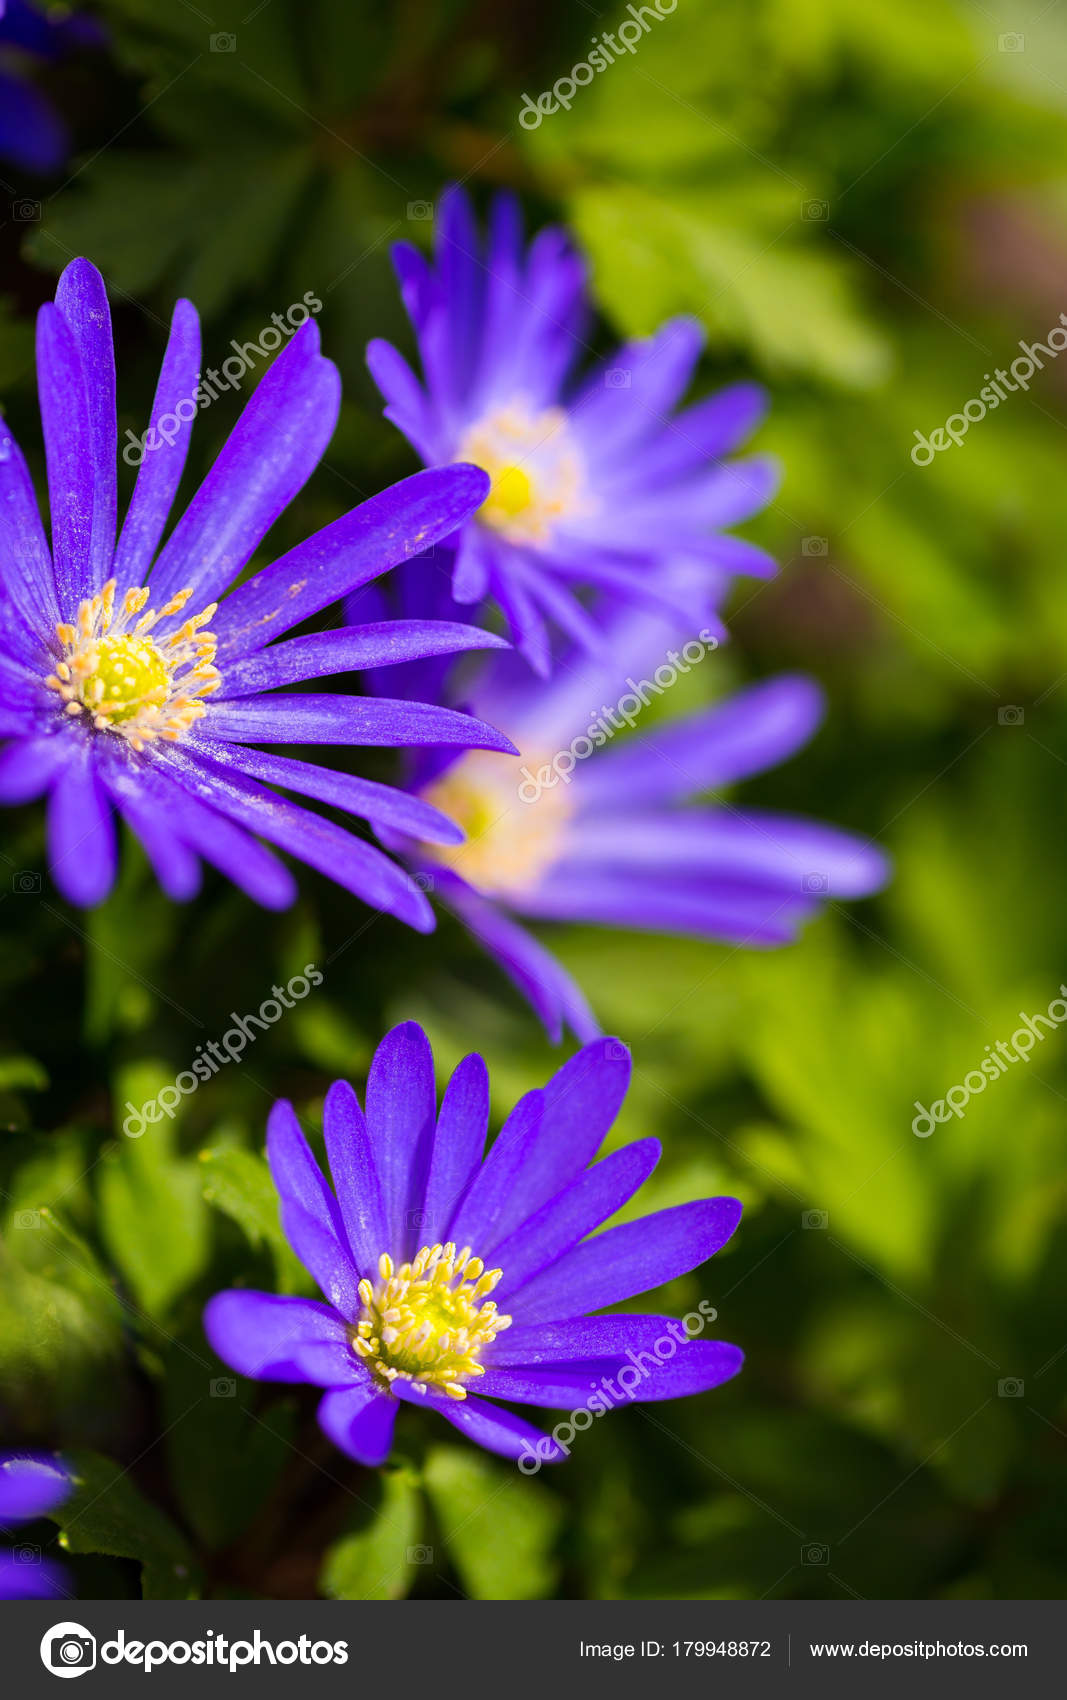 Violet Spring Flowers At Sunny Day In Garden Stock Photo Alexa